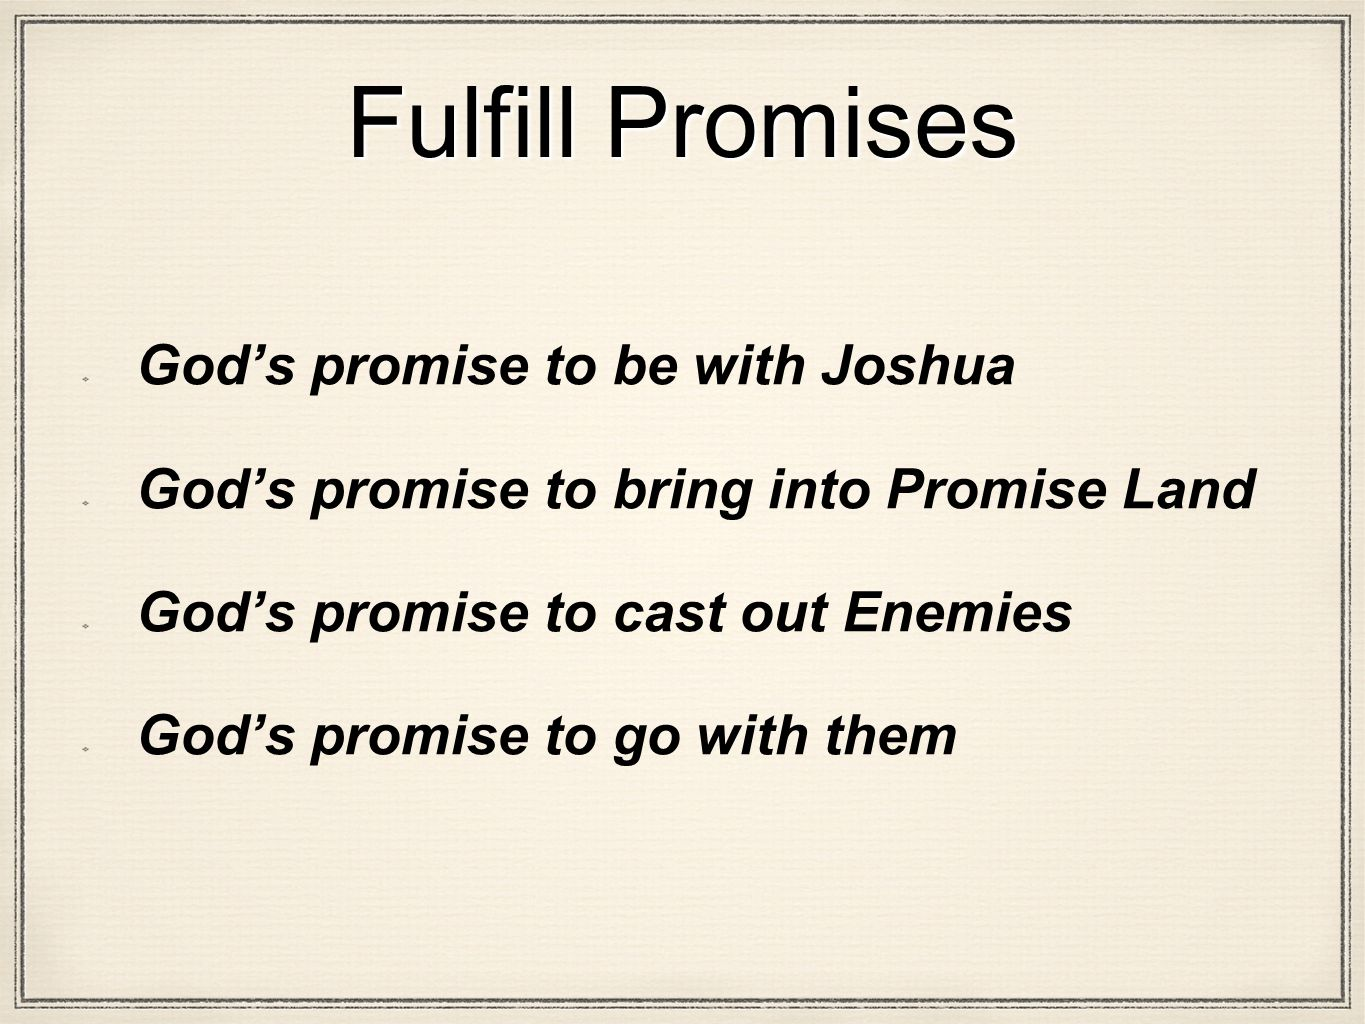 Fulfill Promises God's promise to be with Joshua God's promise to bring into Promise Land God's promise to cast out Enemies God's promise to go with them